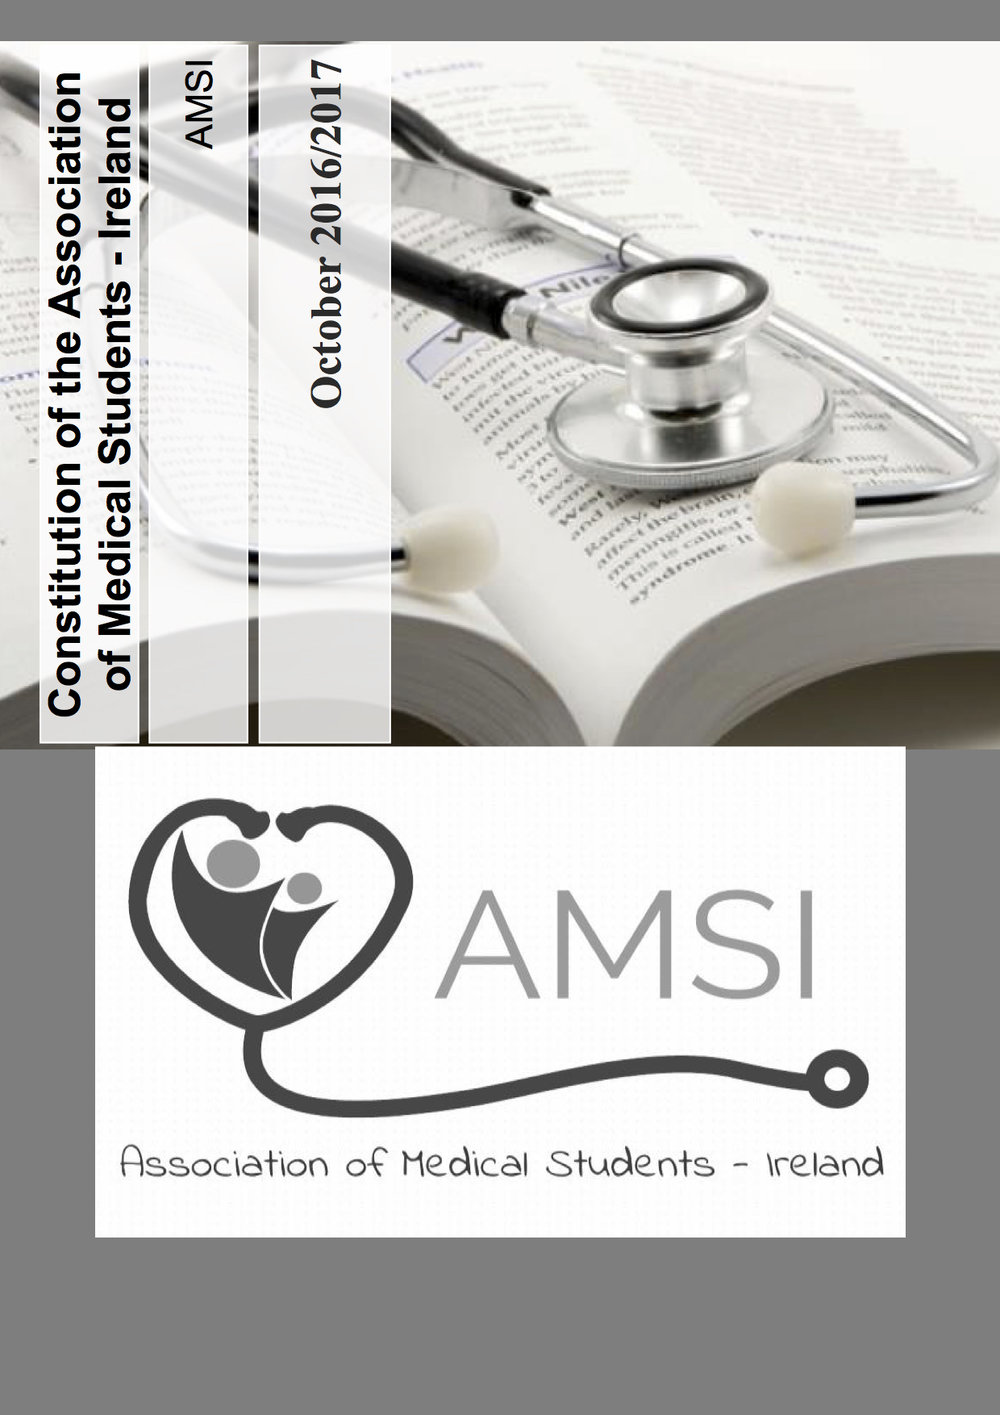 AMSI-FInal-Constitution.jpg